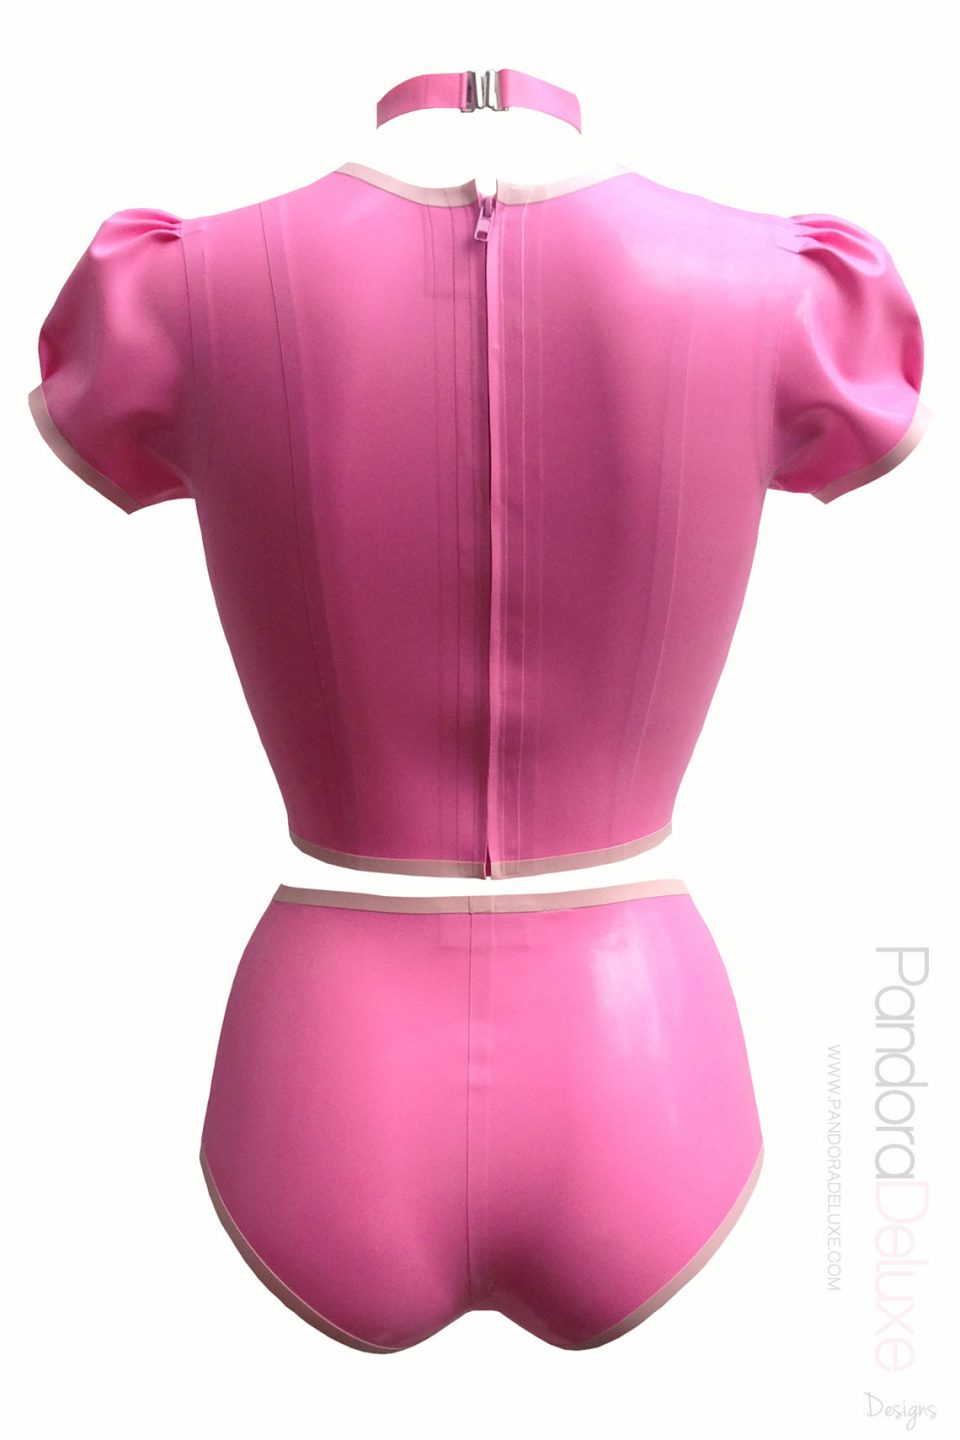 barbie-doll-inspired-latex-costume-2